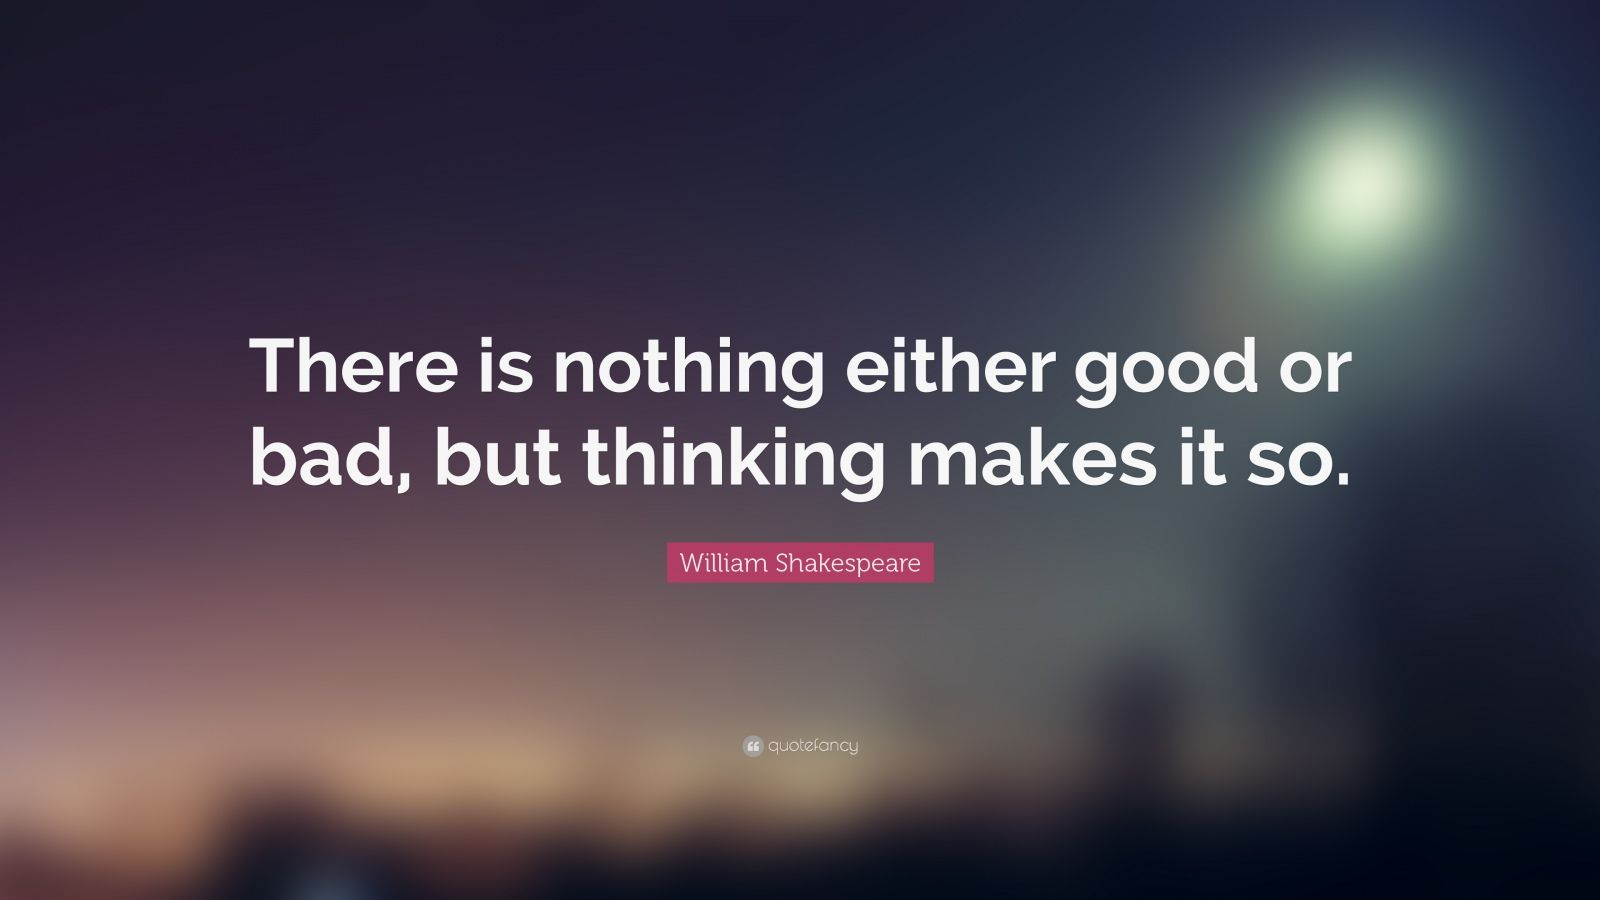 nothing is good or bad but Shakespeare gave us some important advice about how we think about things affects the way we feel oftentimes, our negative judgments cause suffering.